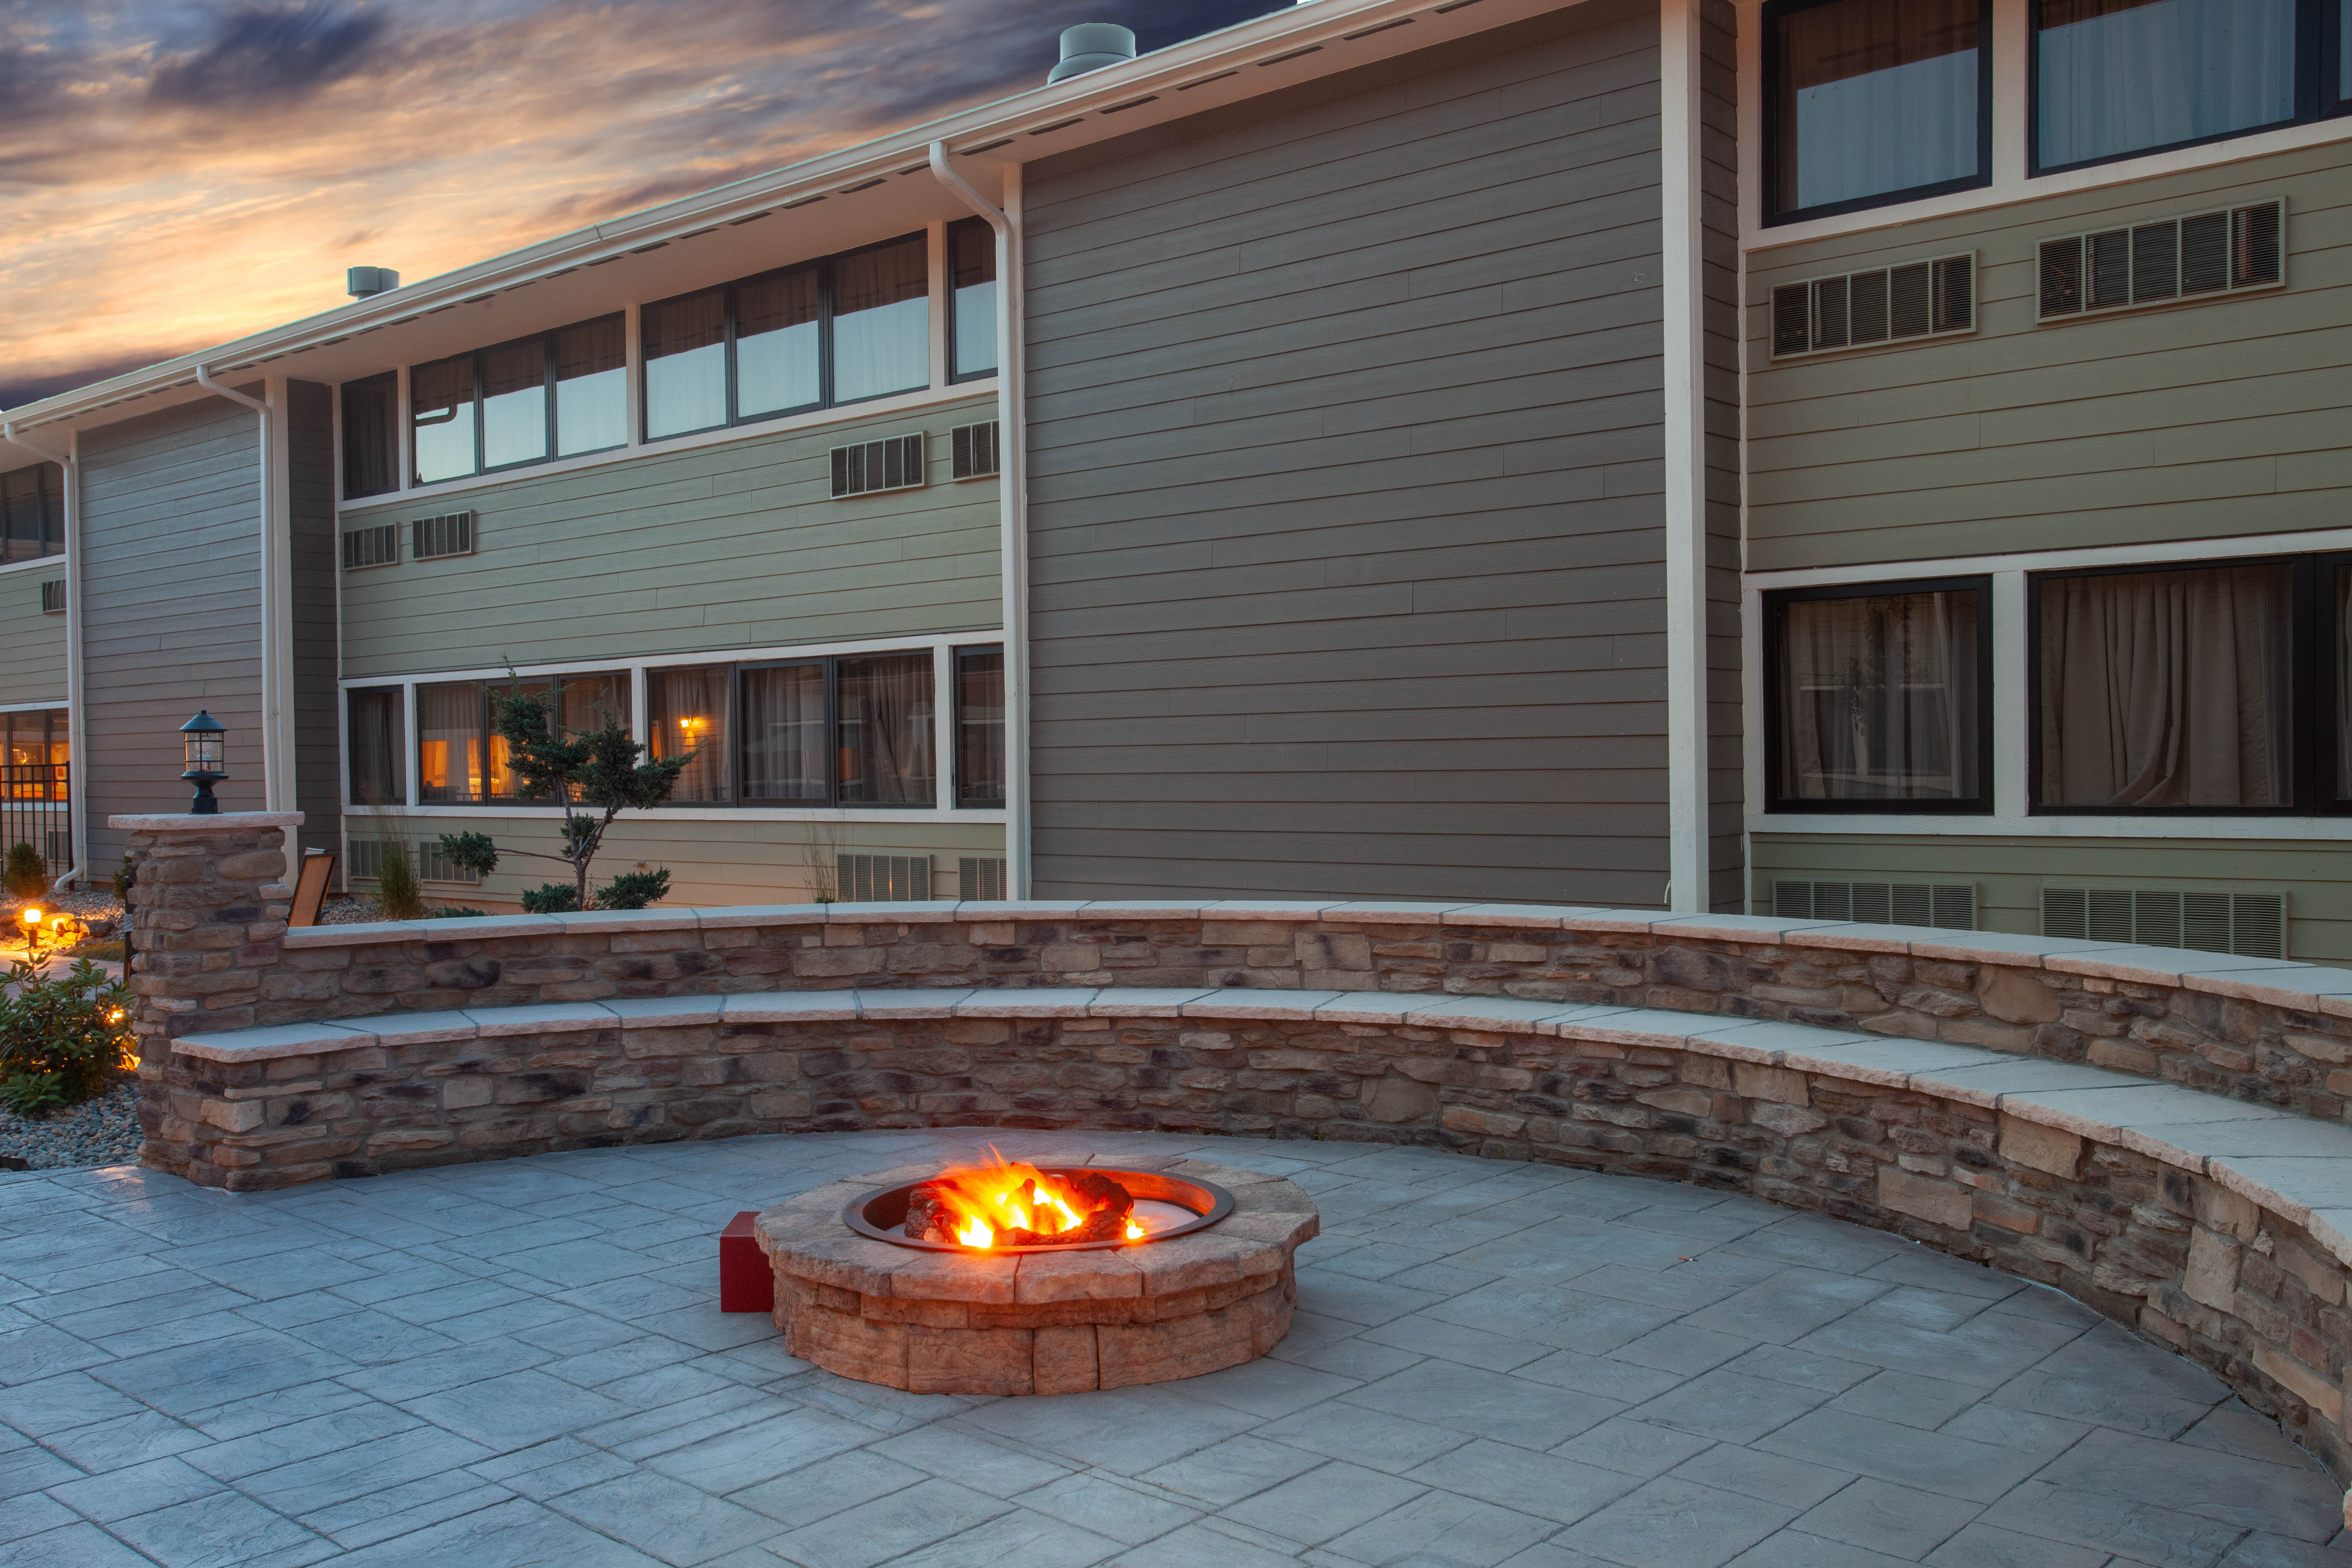 https://memorialcoliseum.com/images/Images/Where_to_Stay_Images/Wyndham_Garden/Firepit.jpg